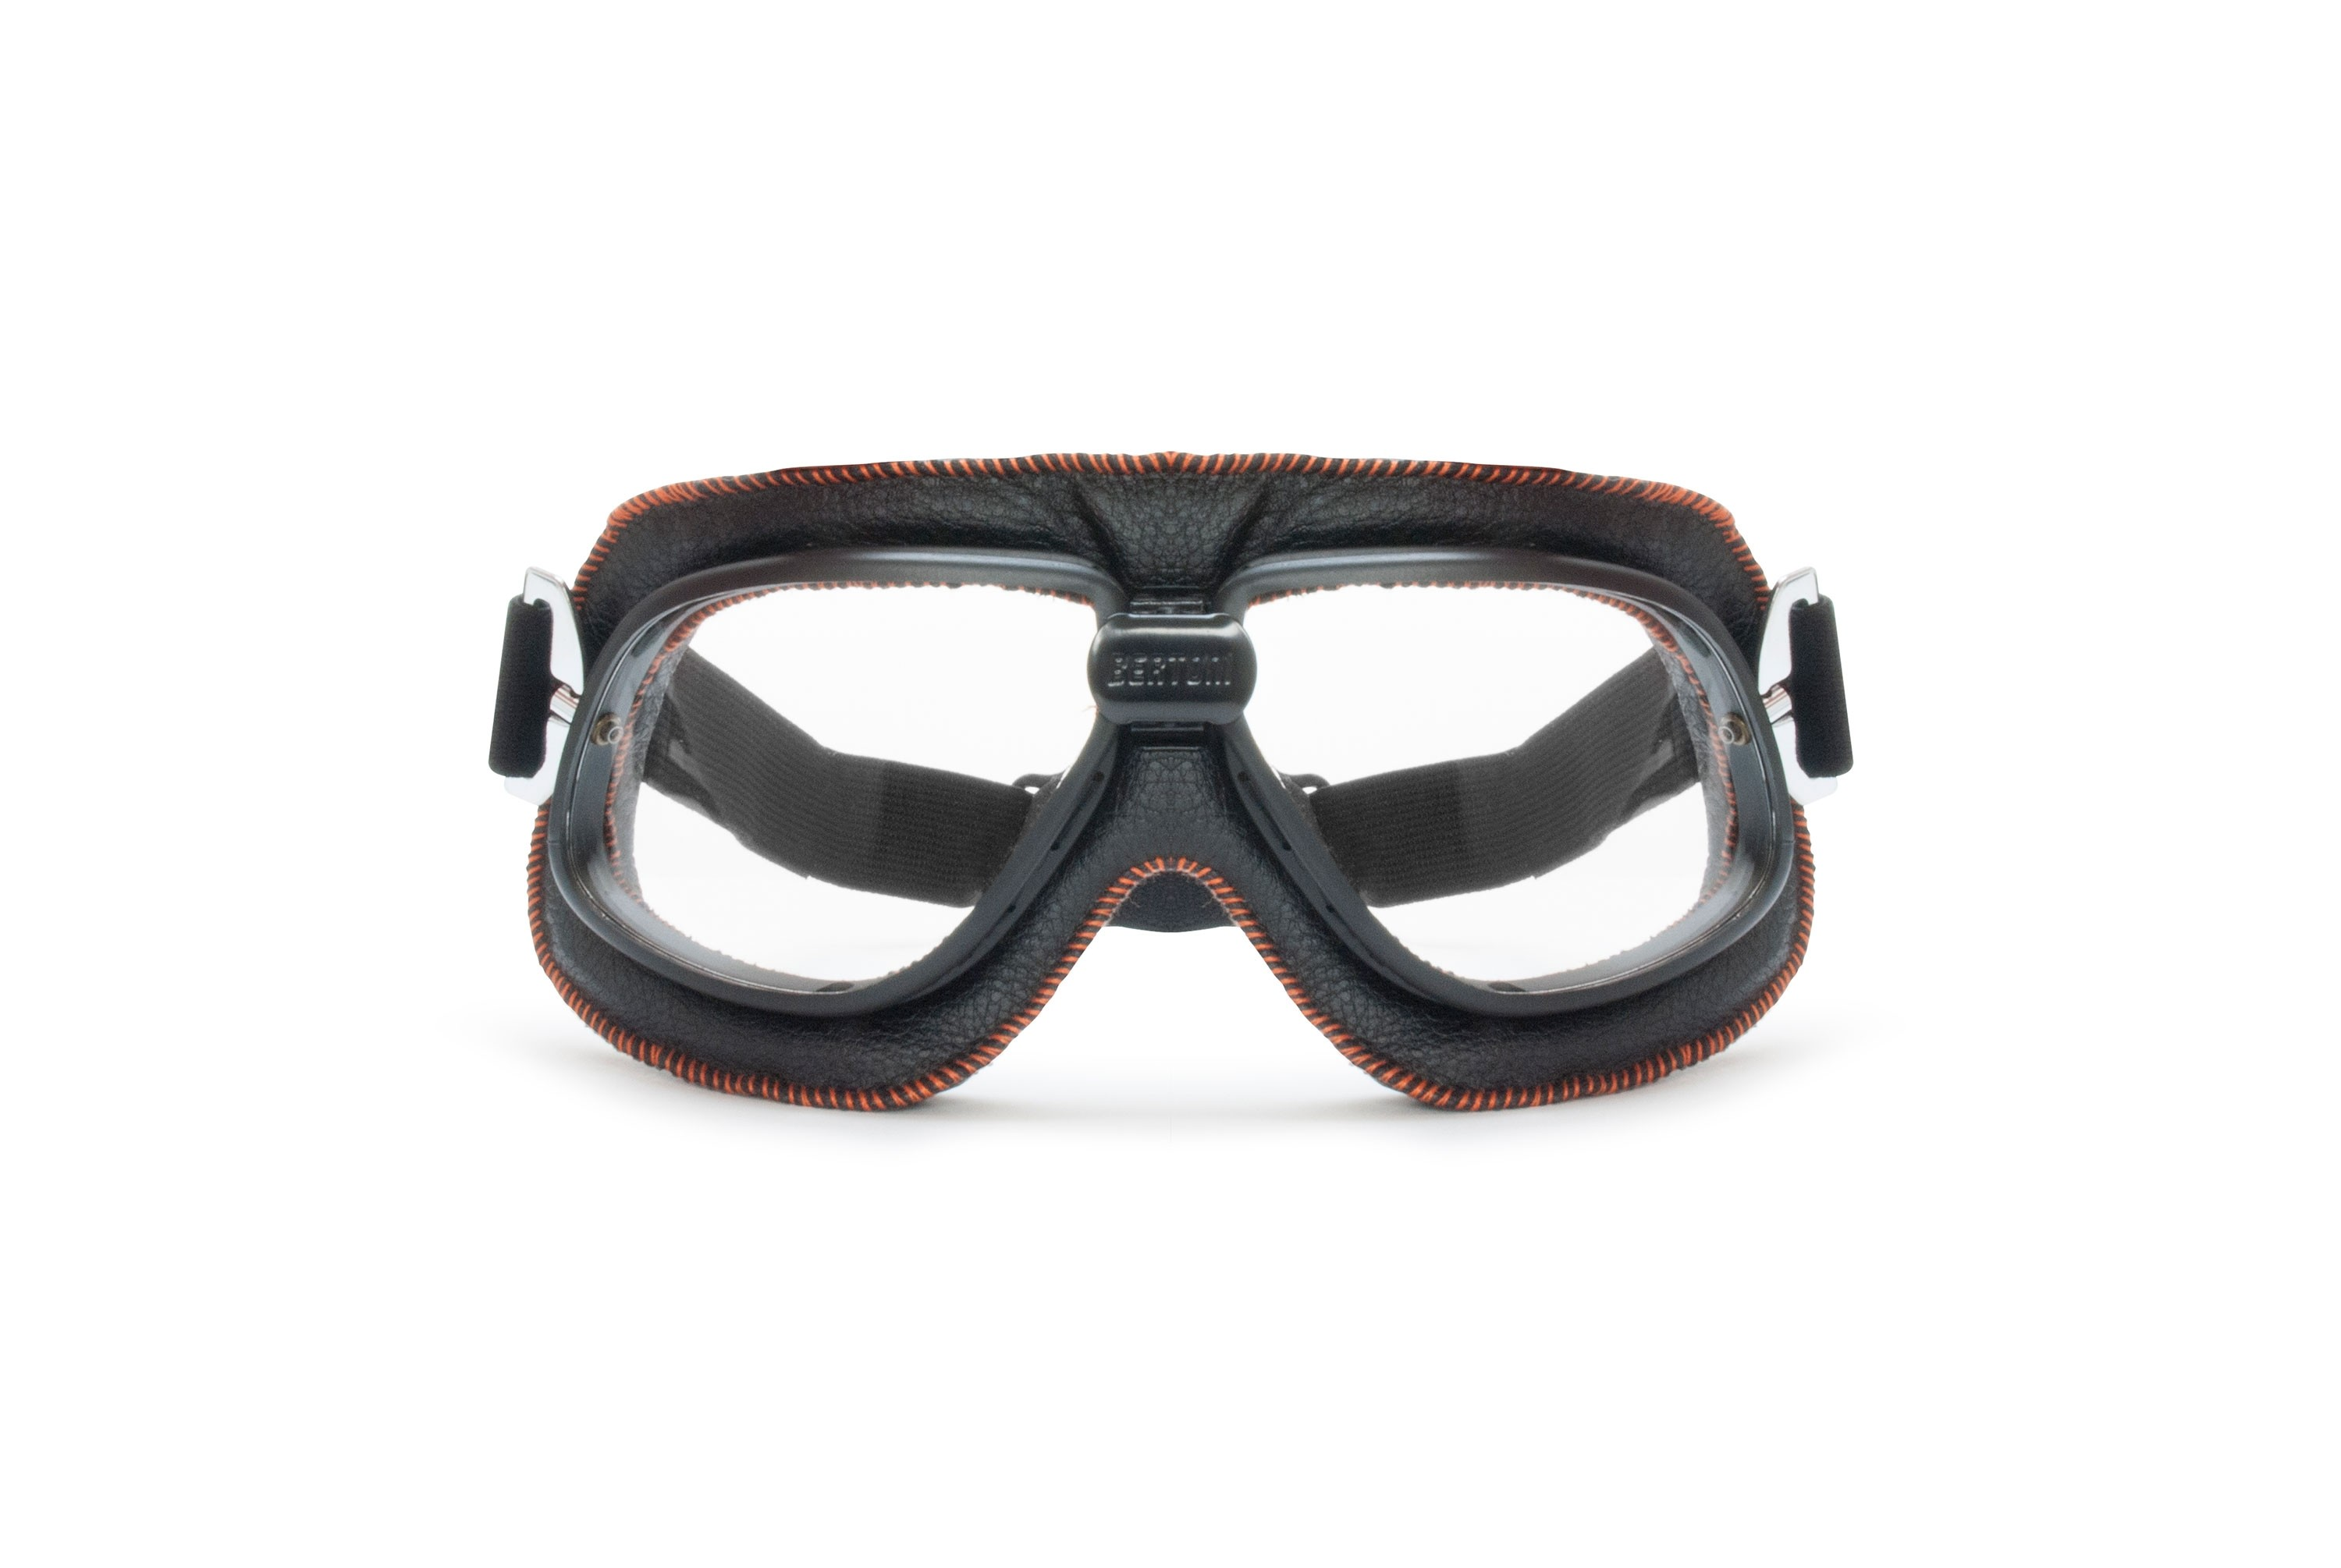 Vintage Motorcycle Goggles in Black Leather and Orange Stitching with Clear Lenses By Bertoni Italy - AF196B